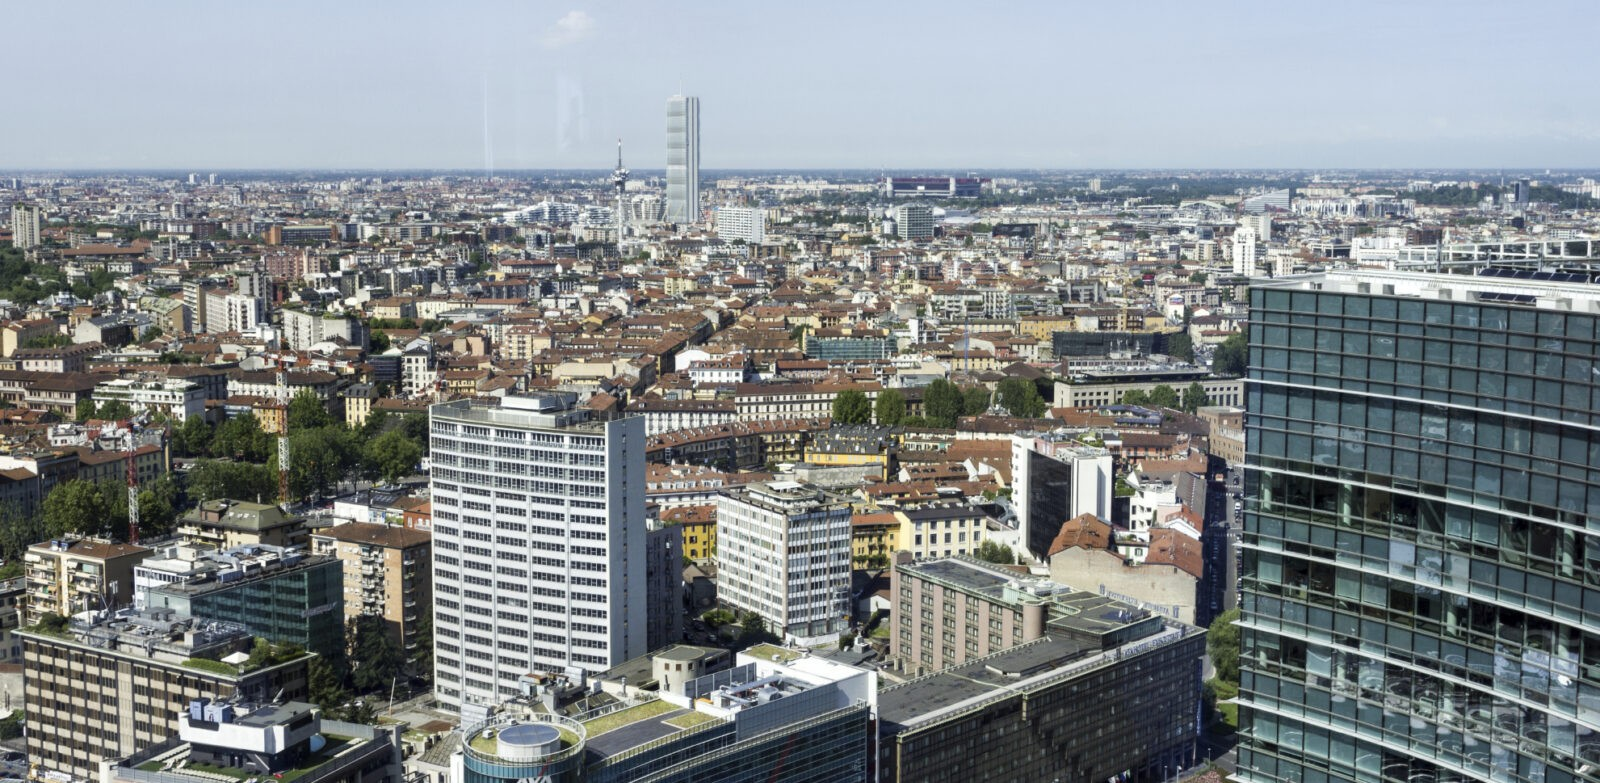 Milan Italy Aerial View